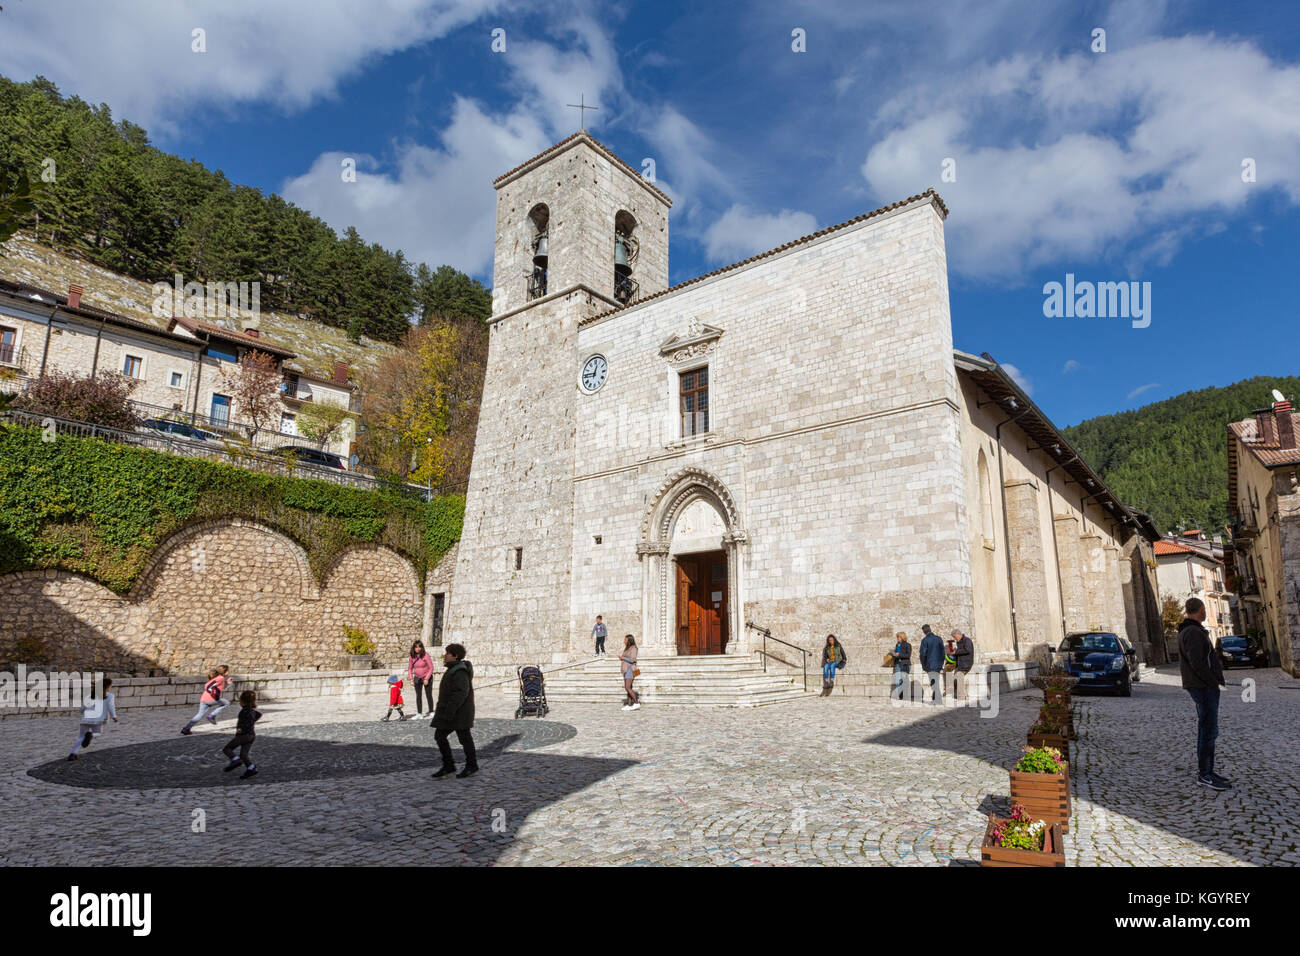 Pescasseroli (Abruzzo, Italy) - A view of the little town, SS Pietro and Paolo church - Stock Image